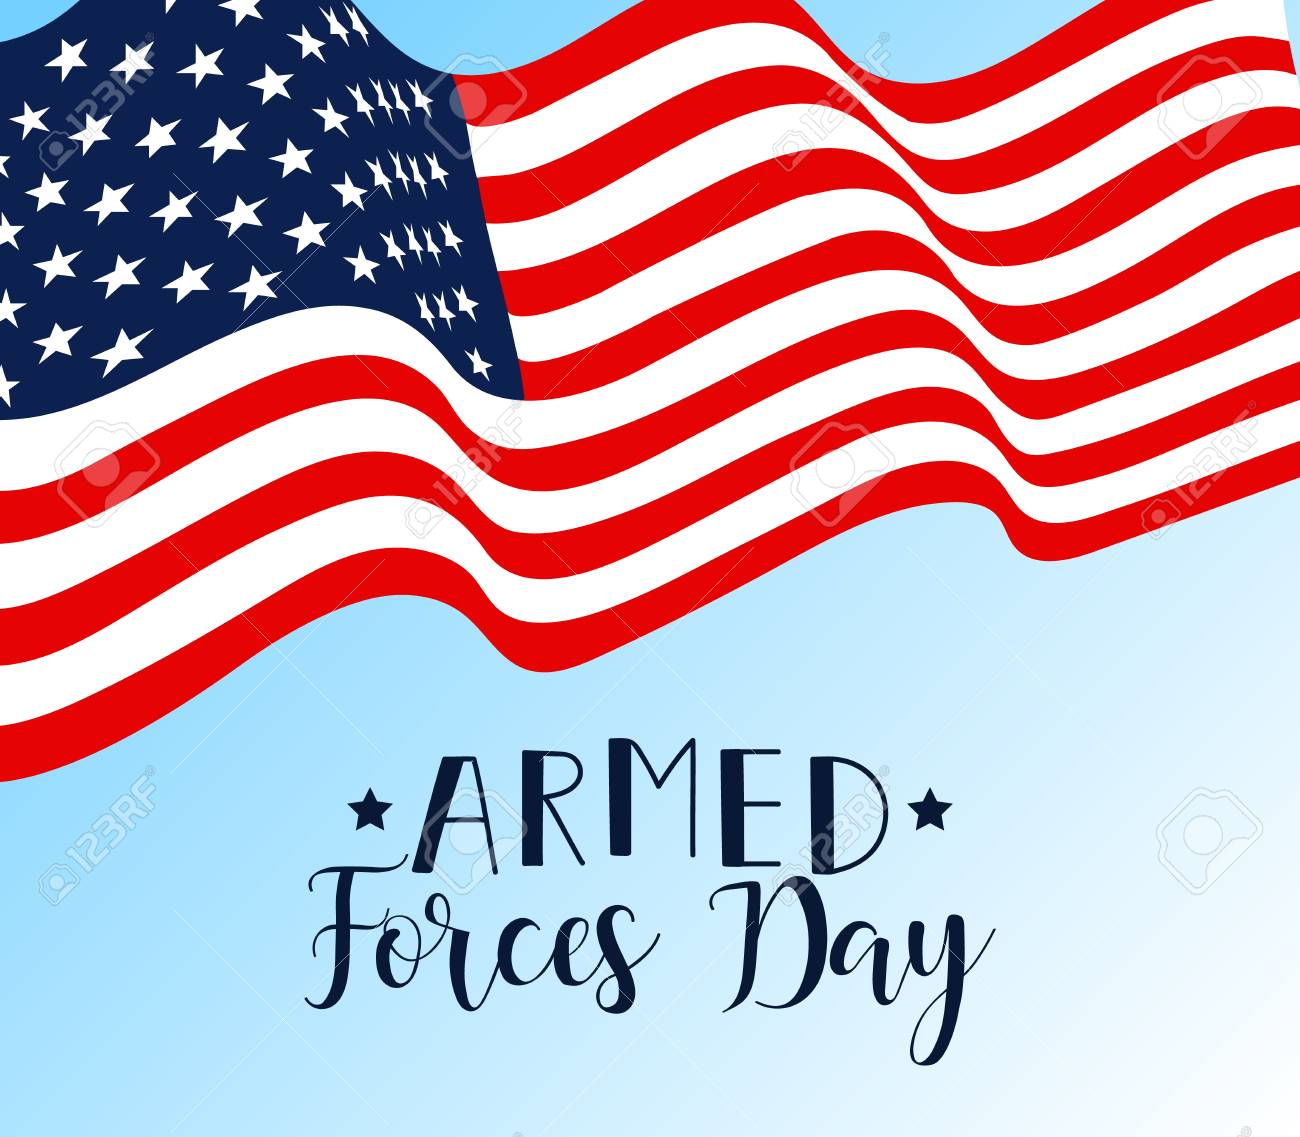 Armed forces day with flag design vector illustration.